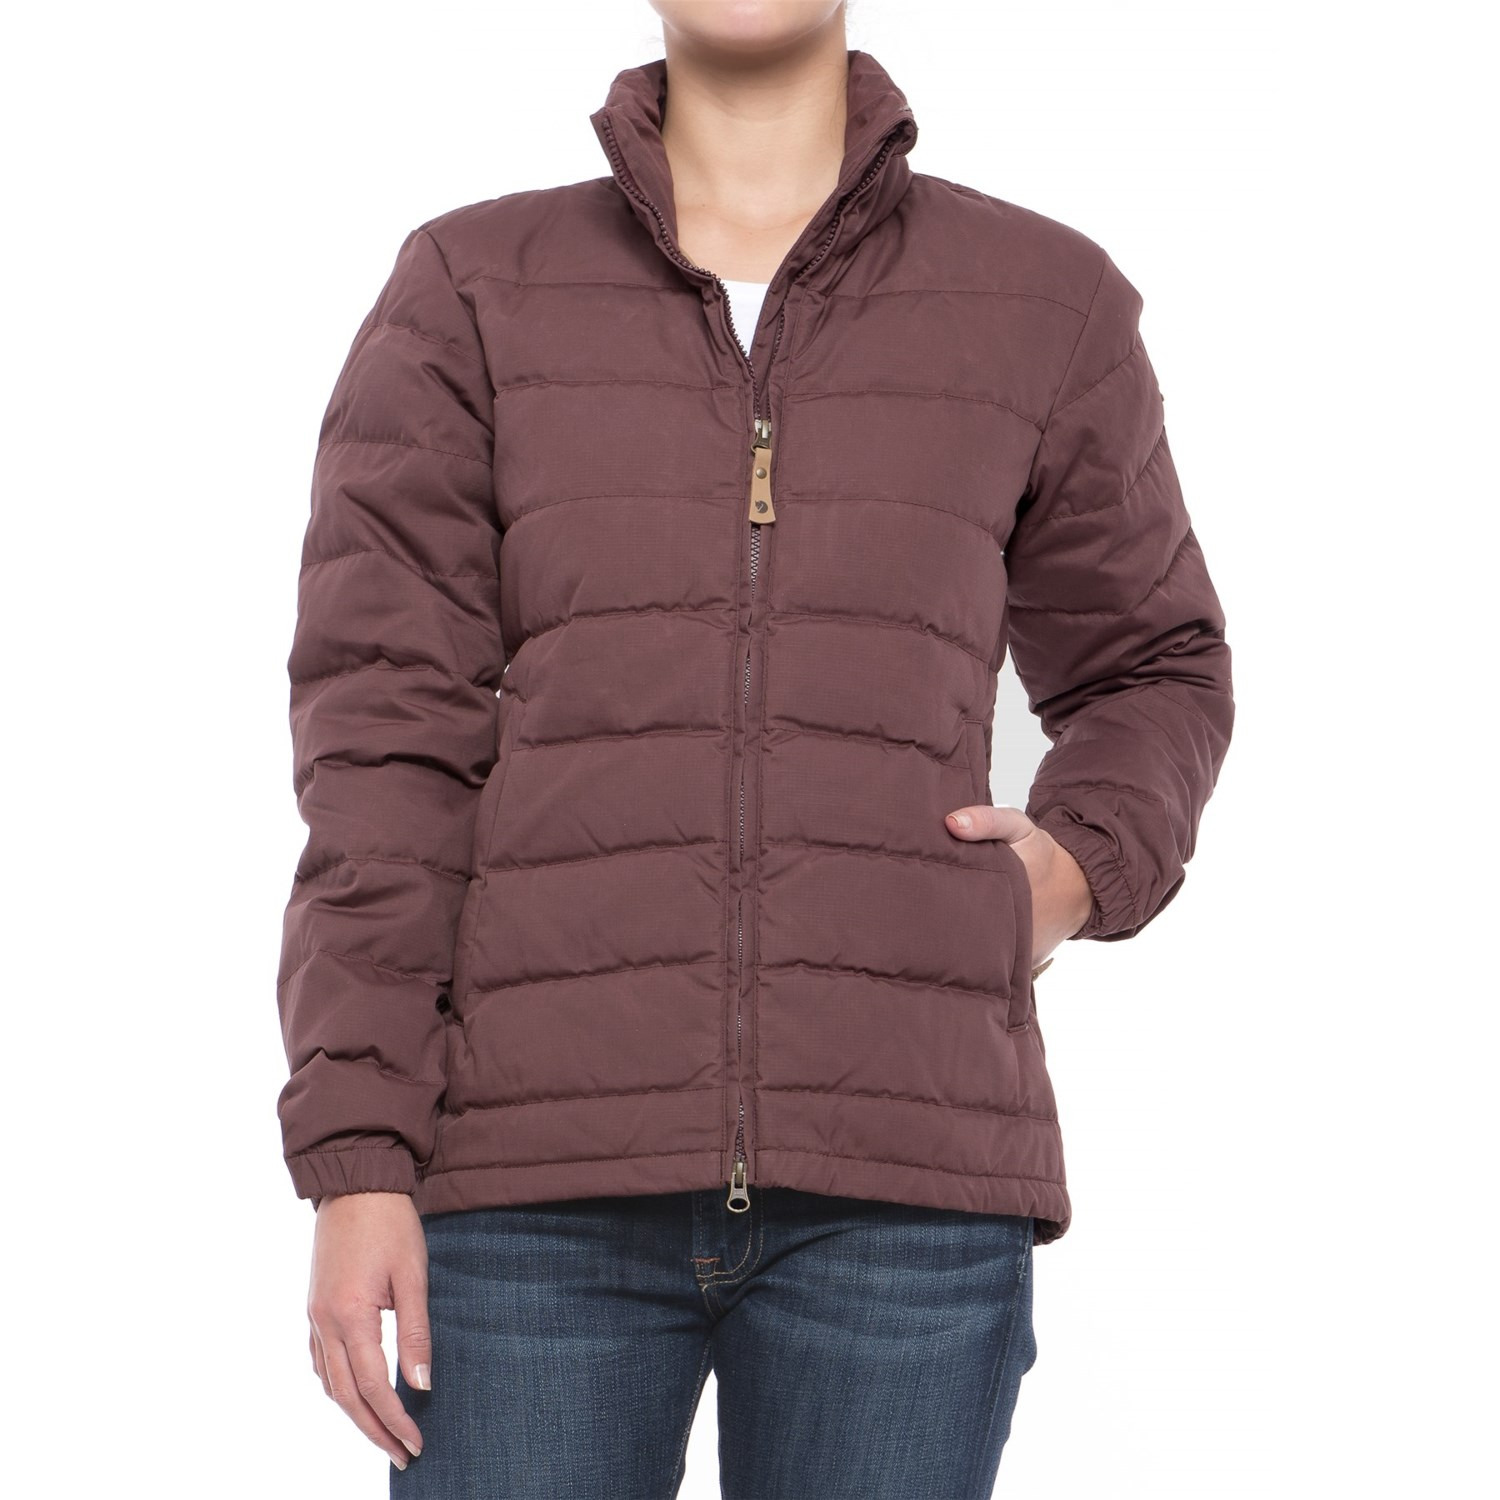 Fjallraven Average Savings Of 60 At Sierra Trading Post D Island Shoes Slip On Zipper Wrinkle Leather Black Ovik Lite Down Jacket For Women In Burnt Red Closeouts